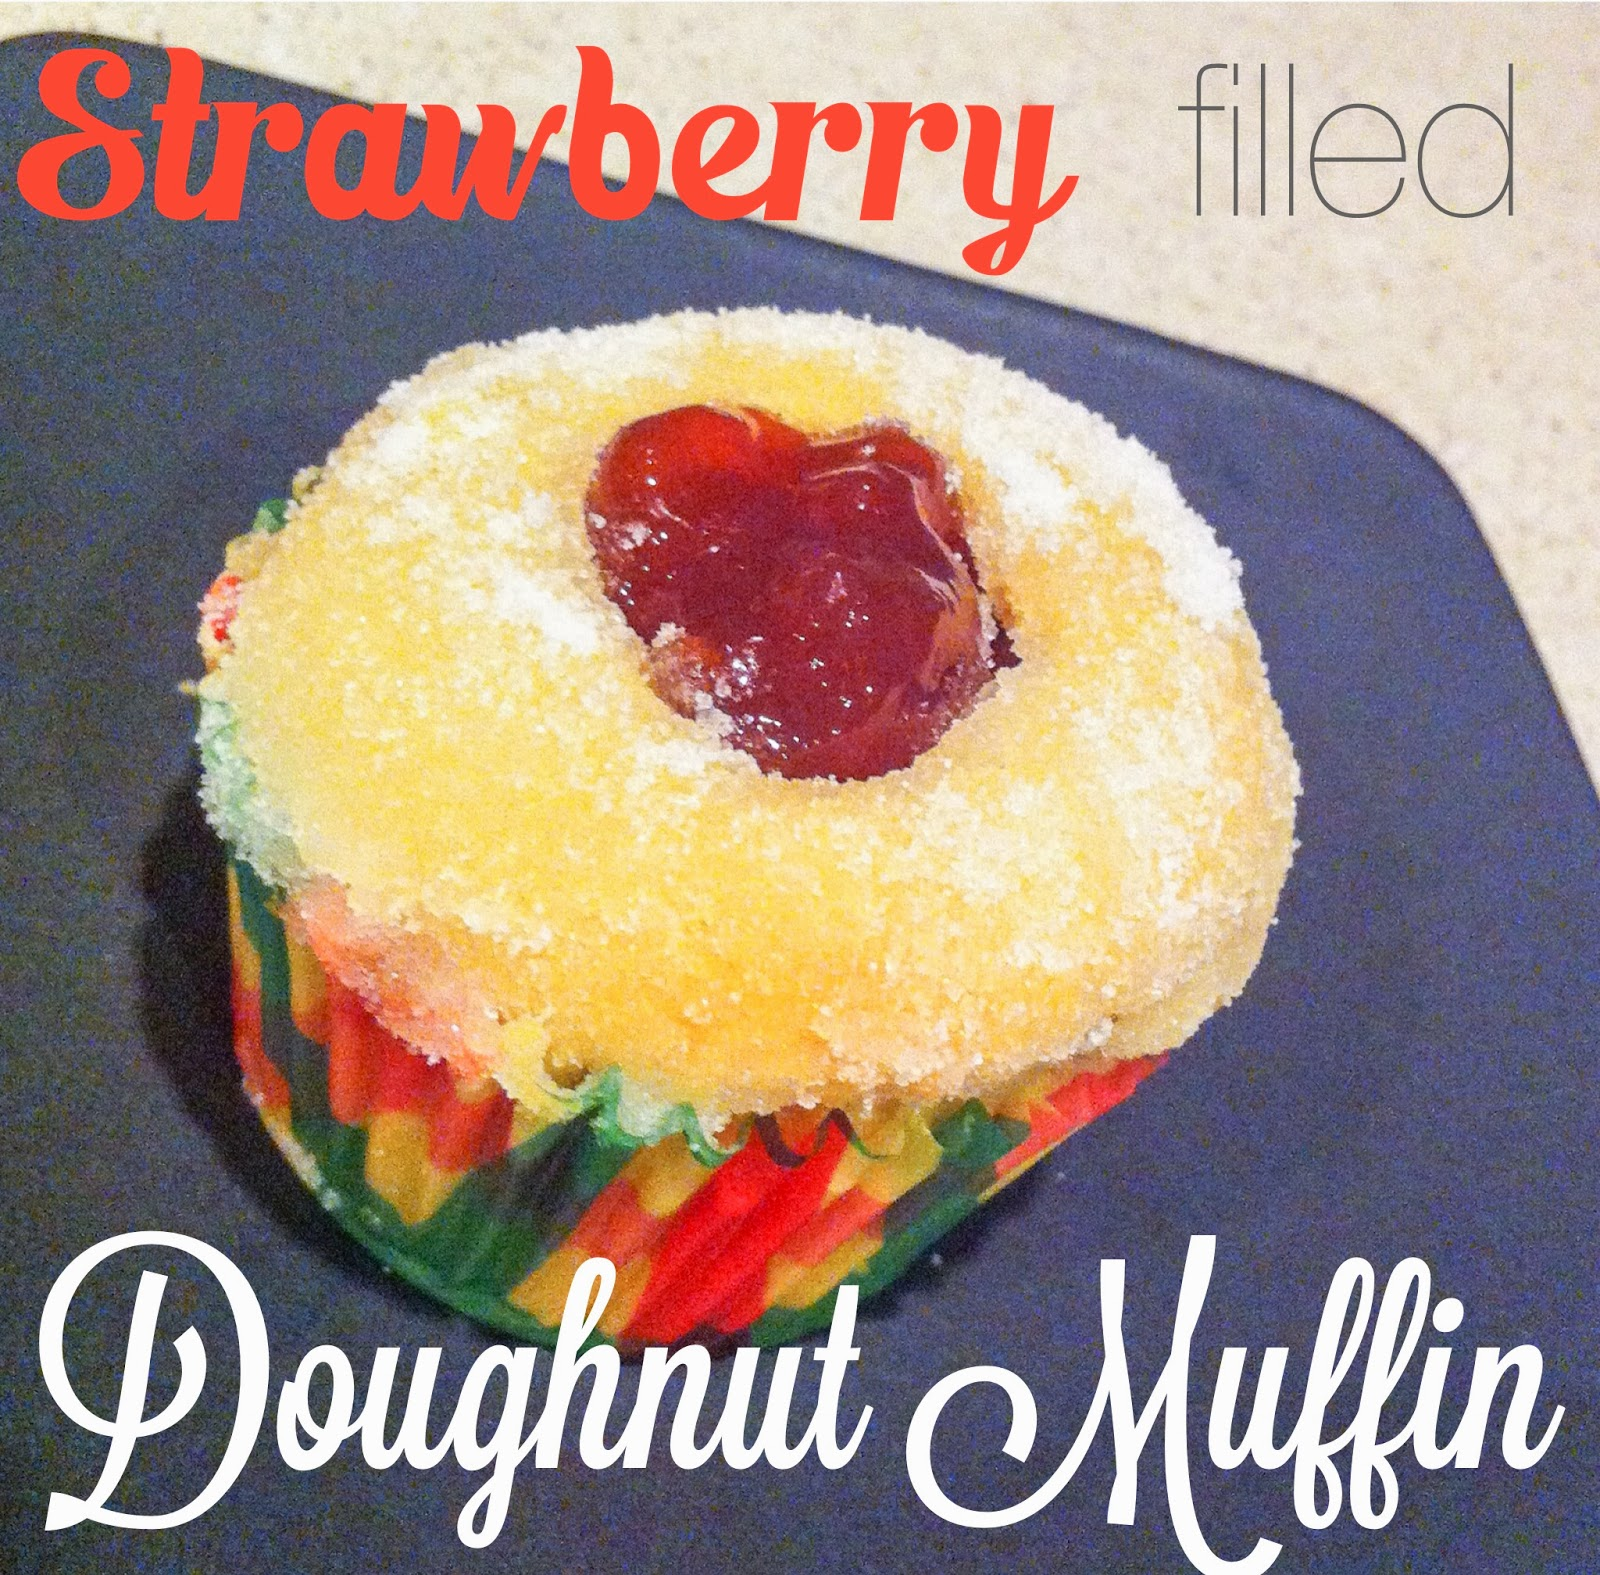 Strawberry filled Doughnut Muffins are easy and delicious- Alohamora http://alohamoraopenabook.blogspot.com/